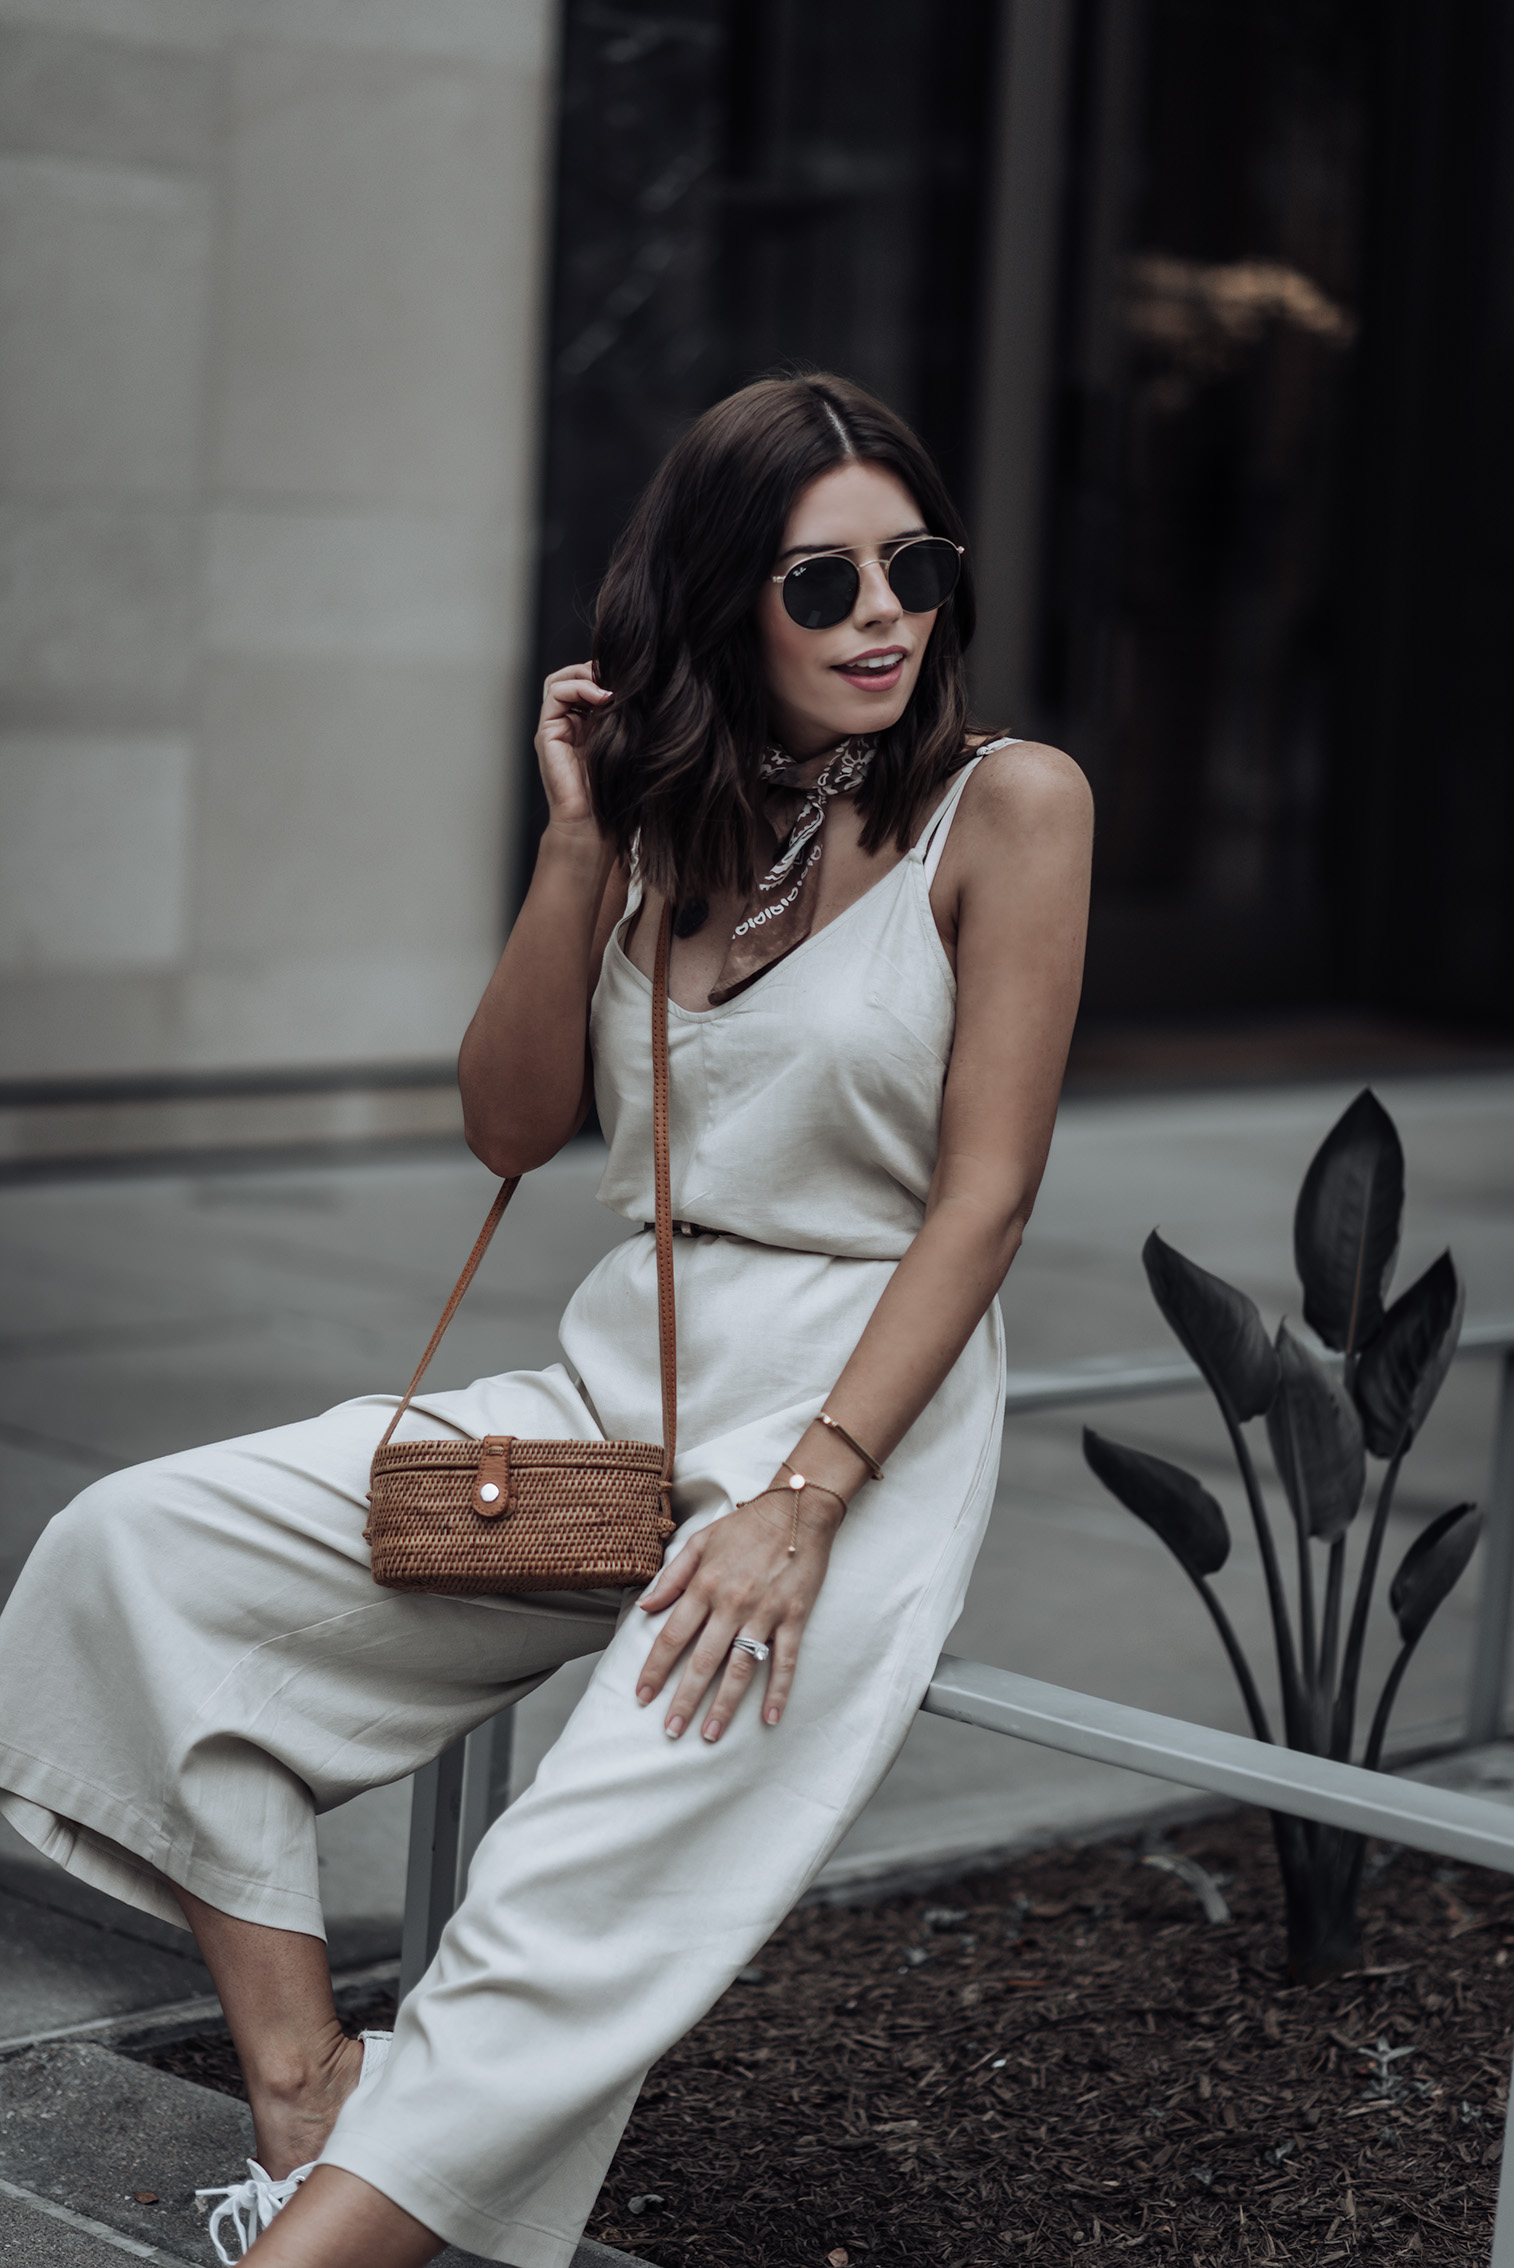 Currently trending - the jumpsuit | Urban Outfitters Shapeless Jumpsuit | Cross Body Box Bag | Superga Platform Sneakers | Monica V. Bangle | Classic bandana #jumpsuit #strawbag #sneakeroutfits #casualstyle #liketkit #urbanoutfitters